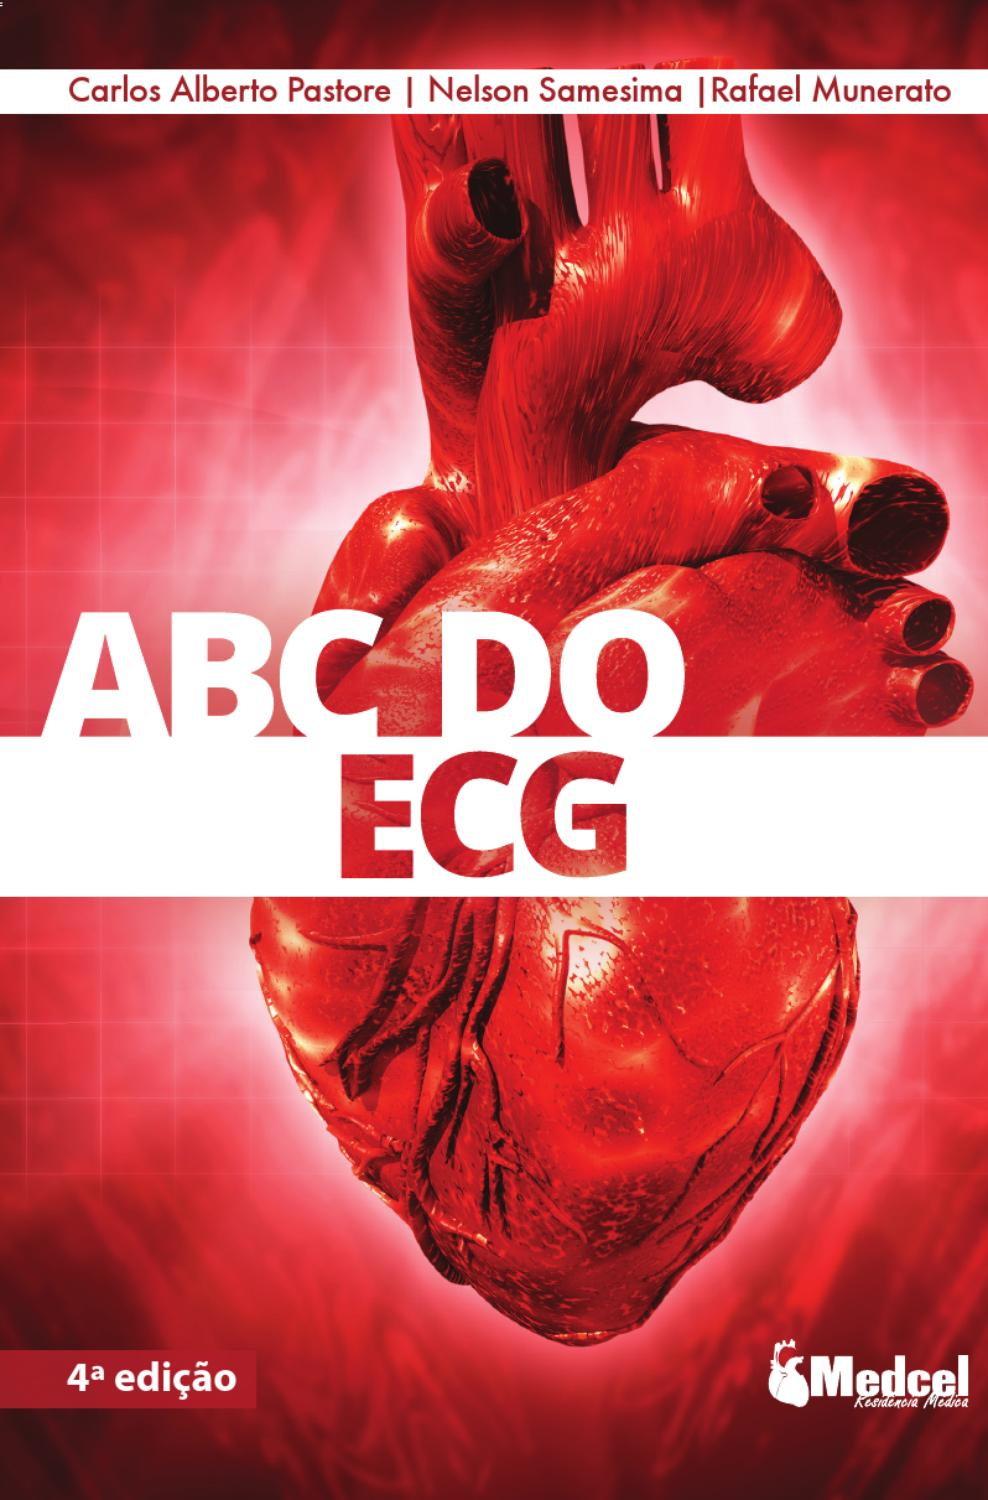 Abc do ecg by medcel issuu for Alberto pastore